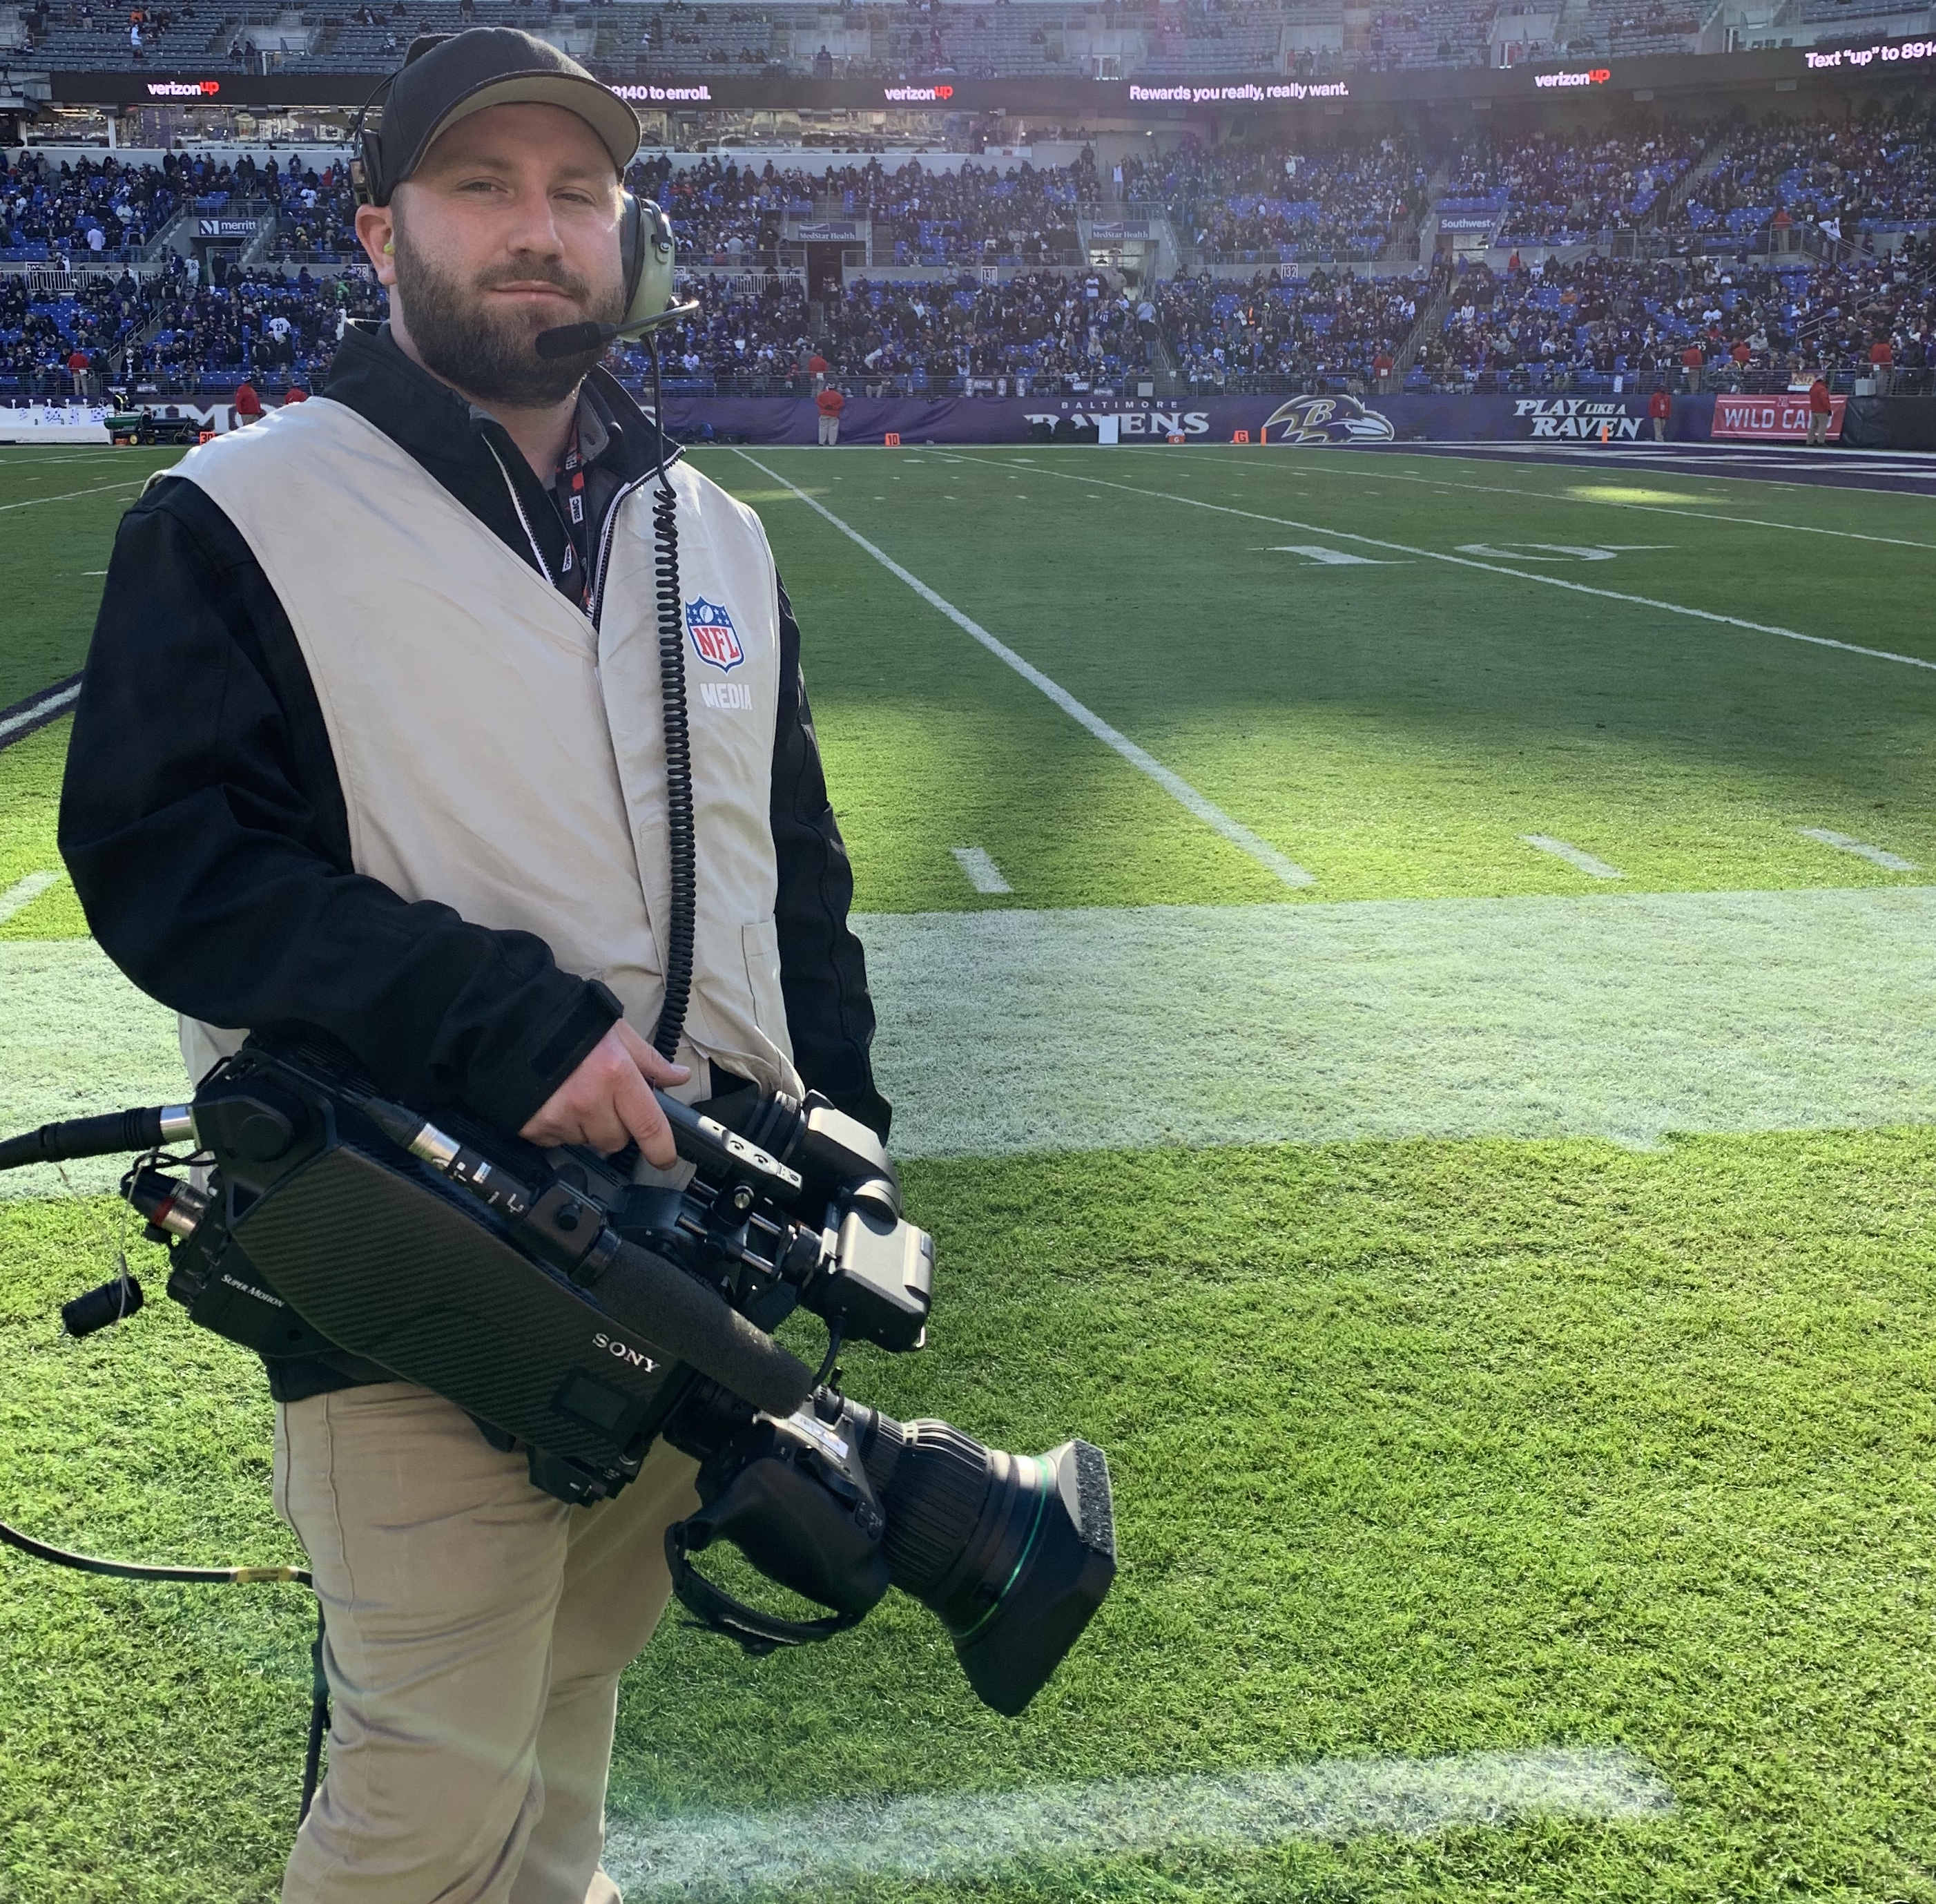 Roddy Named Manager of New Media Studio